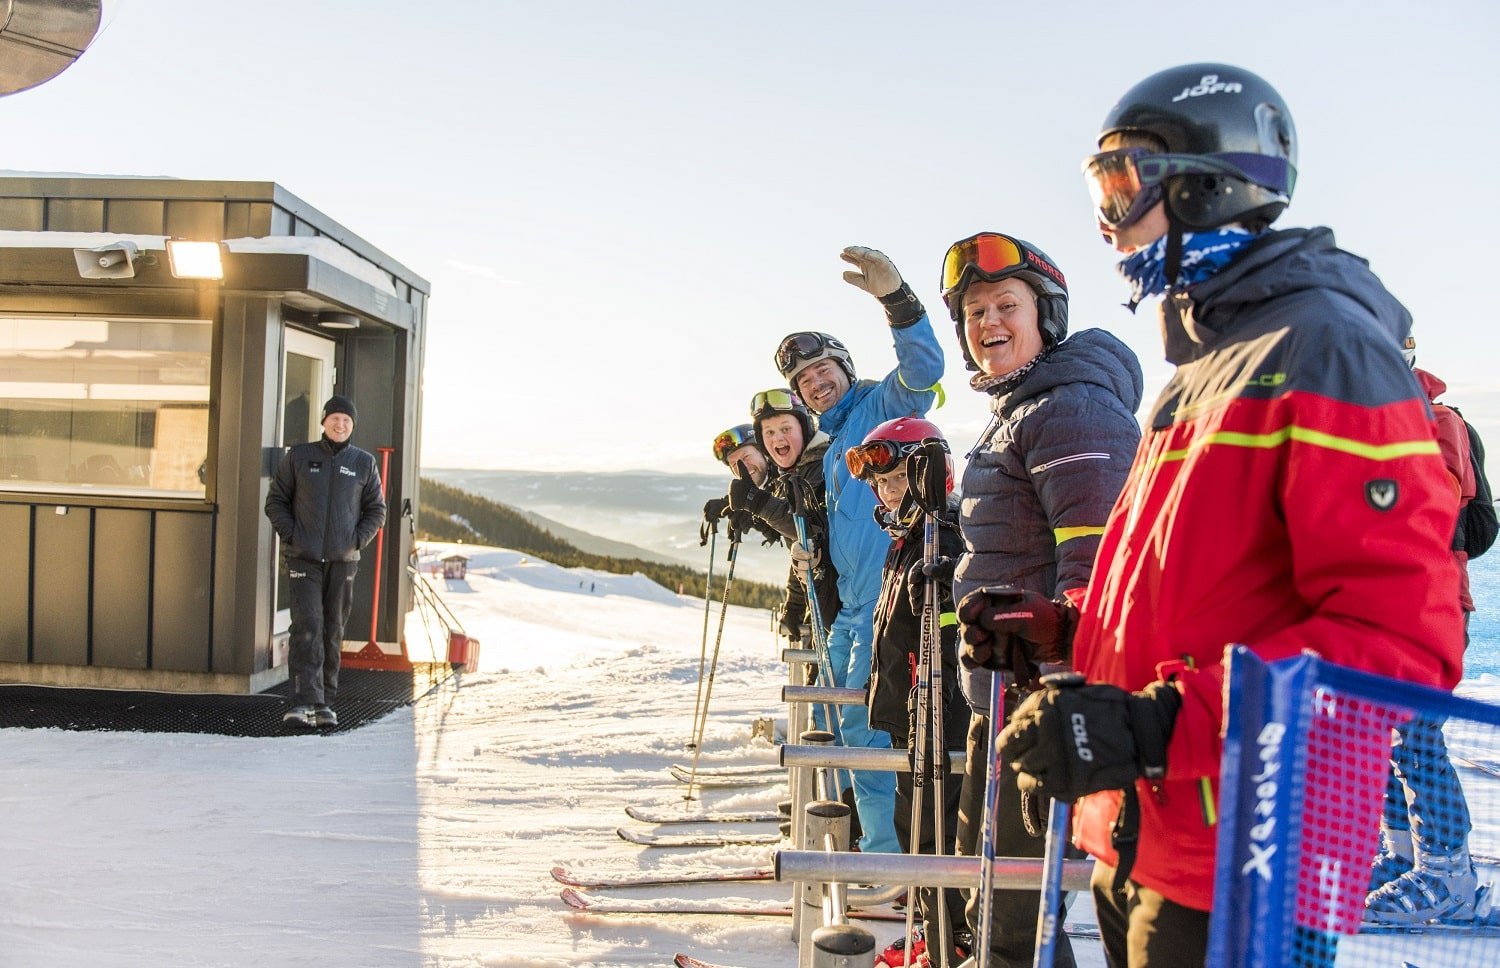 people queuing at ski lift and waving